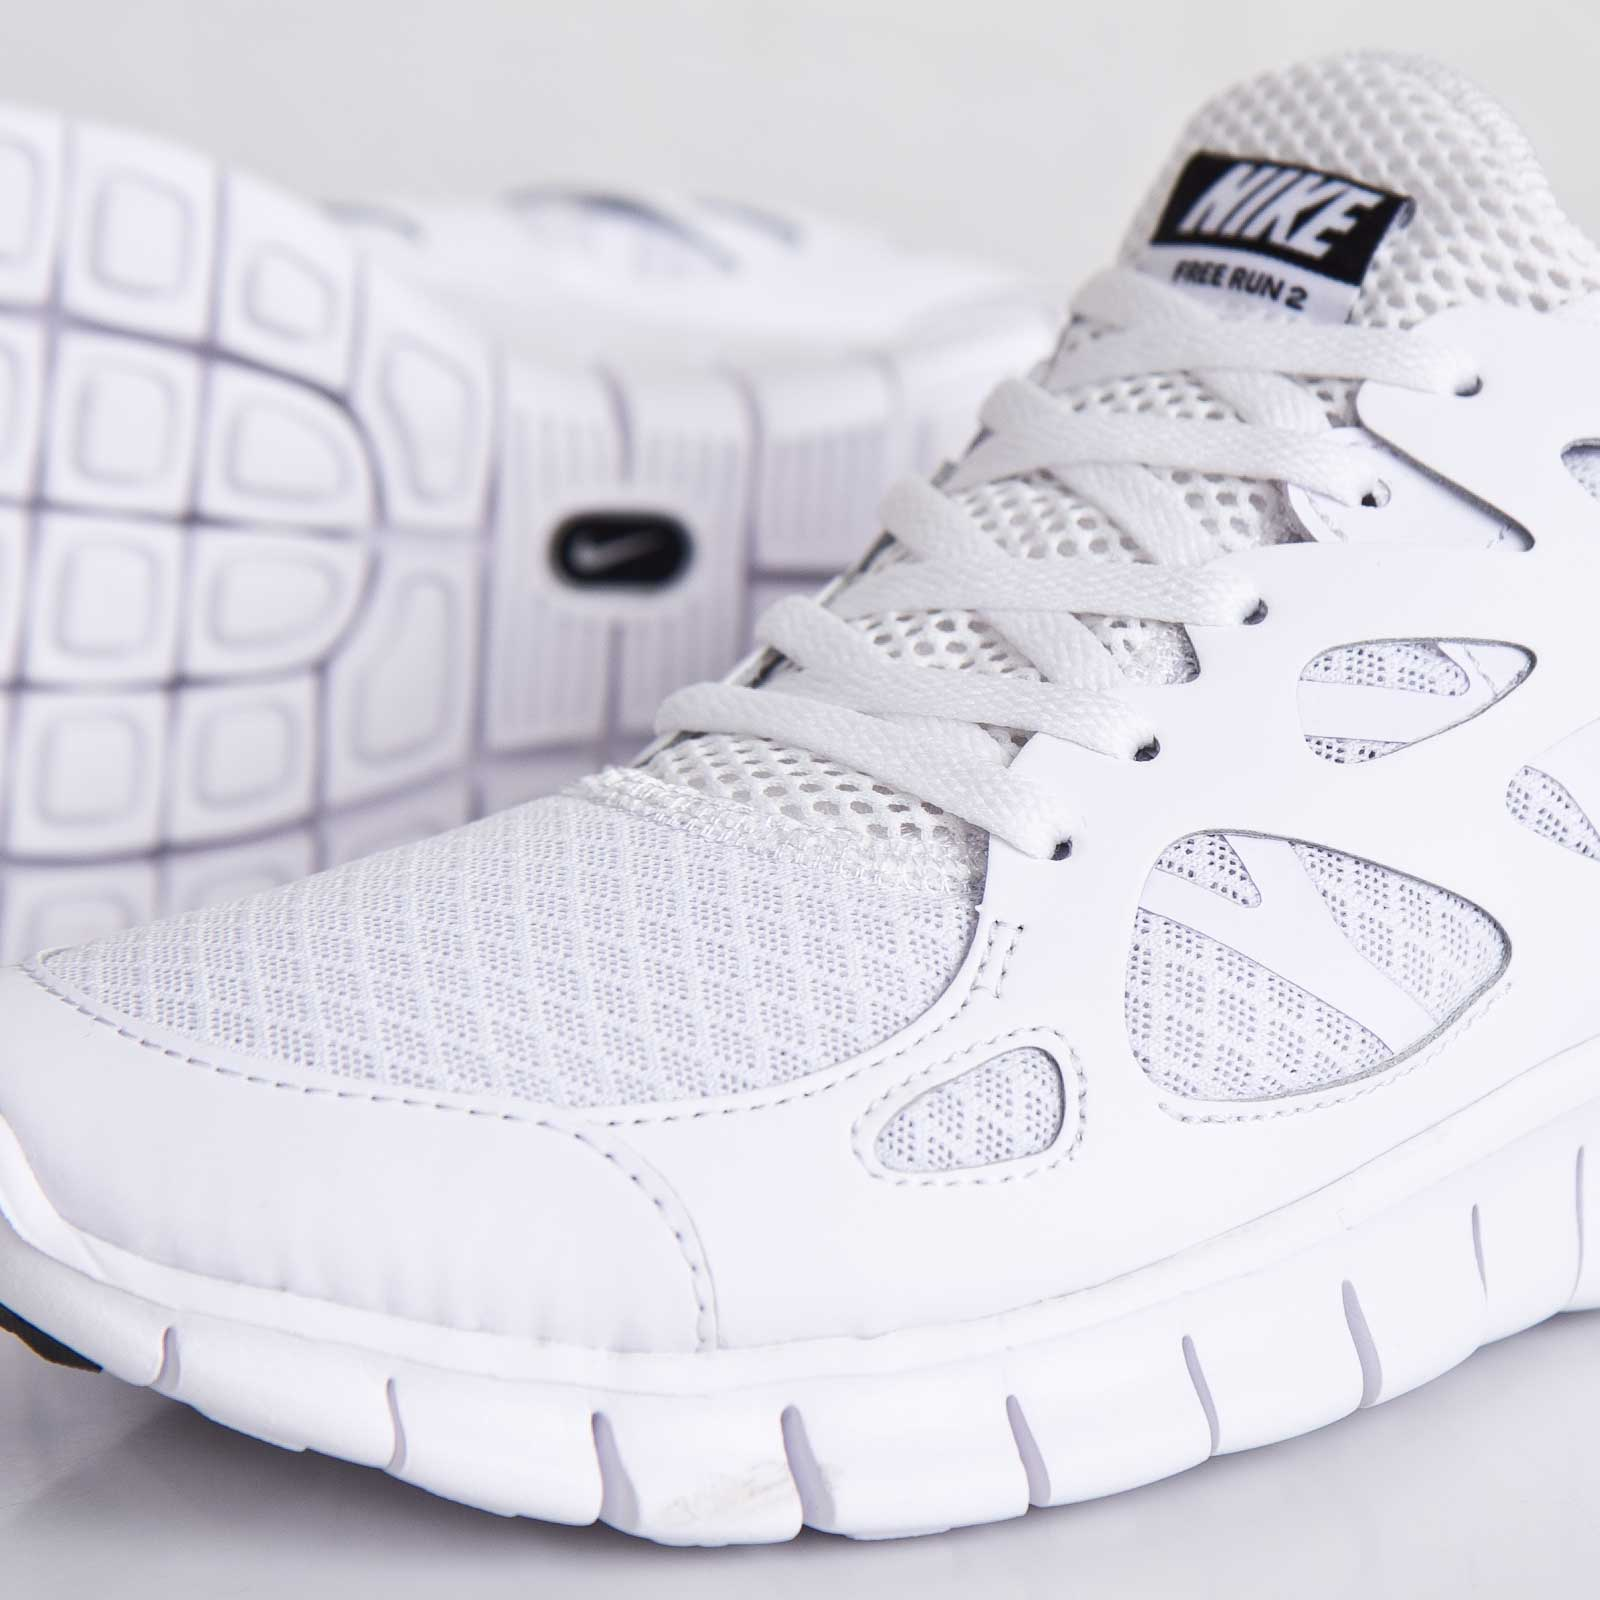 Nike Free Run 2 NSW 540244 101 Sneakersnstuff I Sneakers